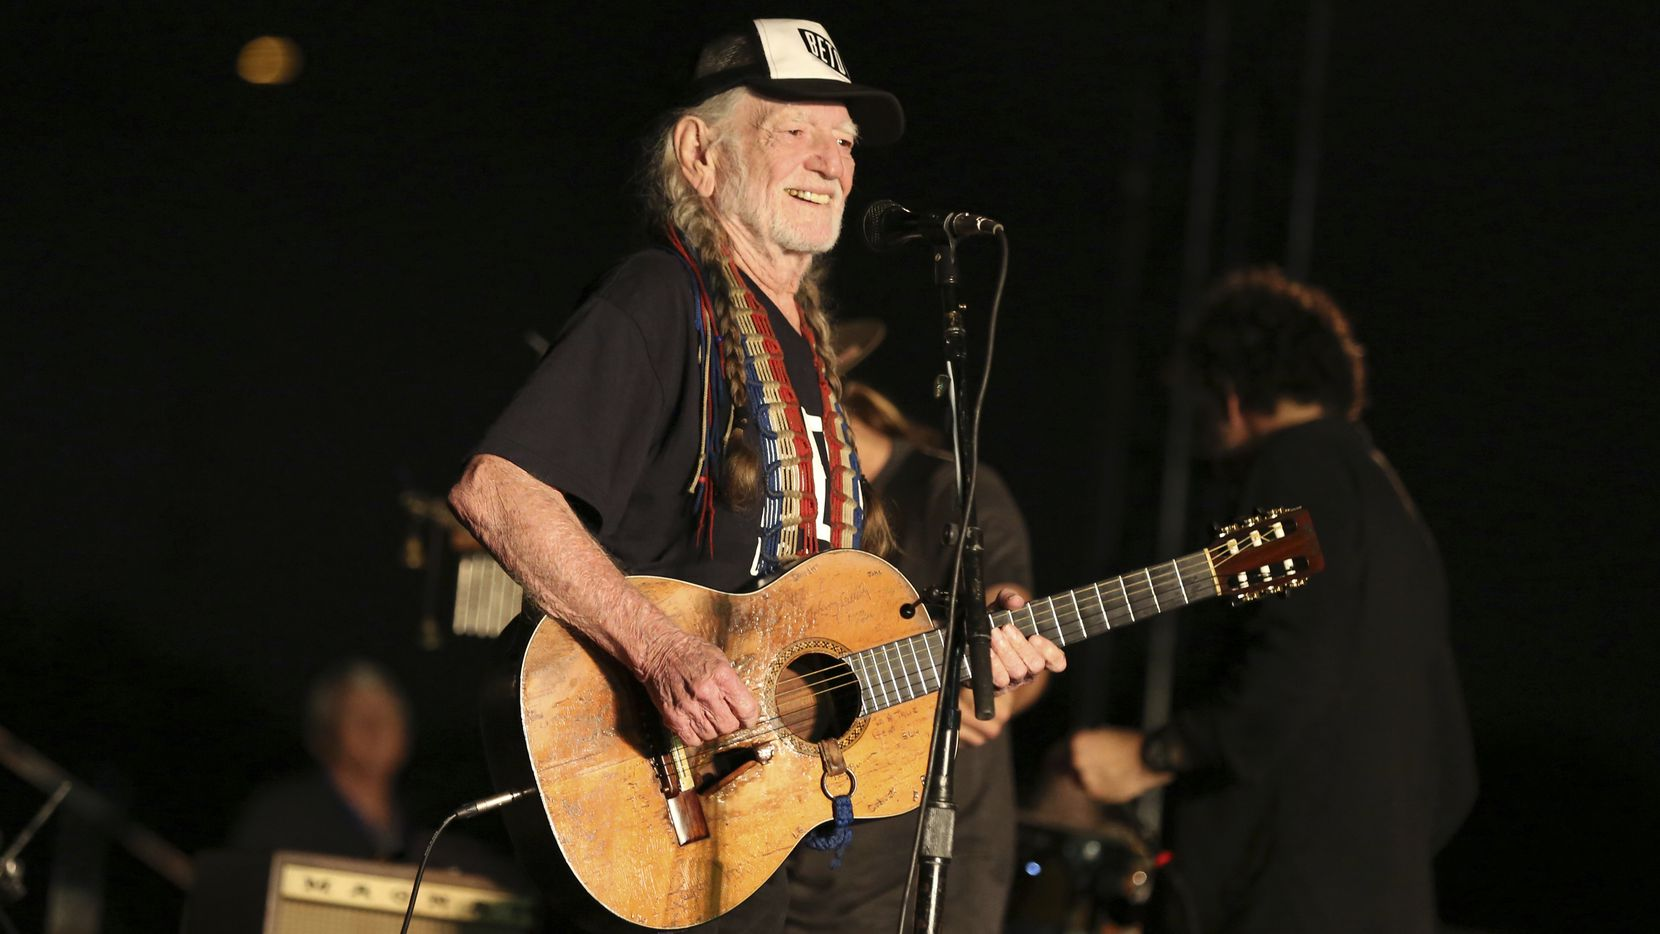 """Willie Nelson, shown performing at a Beto O'Rourke for U.S. Senate event in September 2018, is performing at Saturday's finale of the """"March for Democracy,"""" at the state Capitol in Austin. On Thursday, Nelson chided Republicans for reacting to election losses with calls for changes to voting laws, not self-examination."""